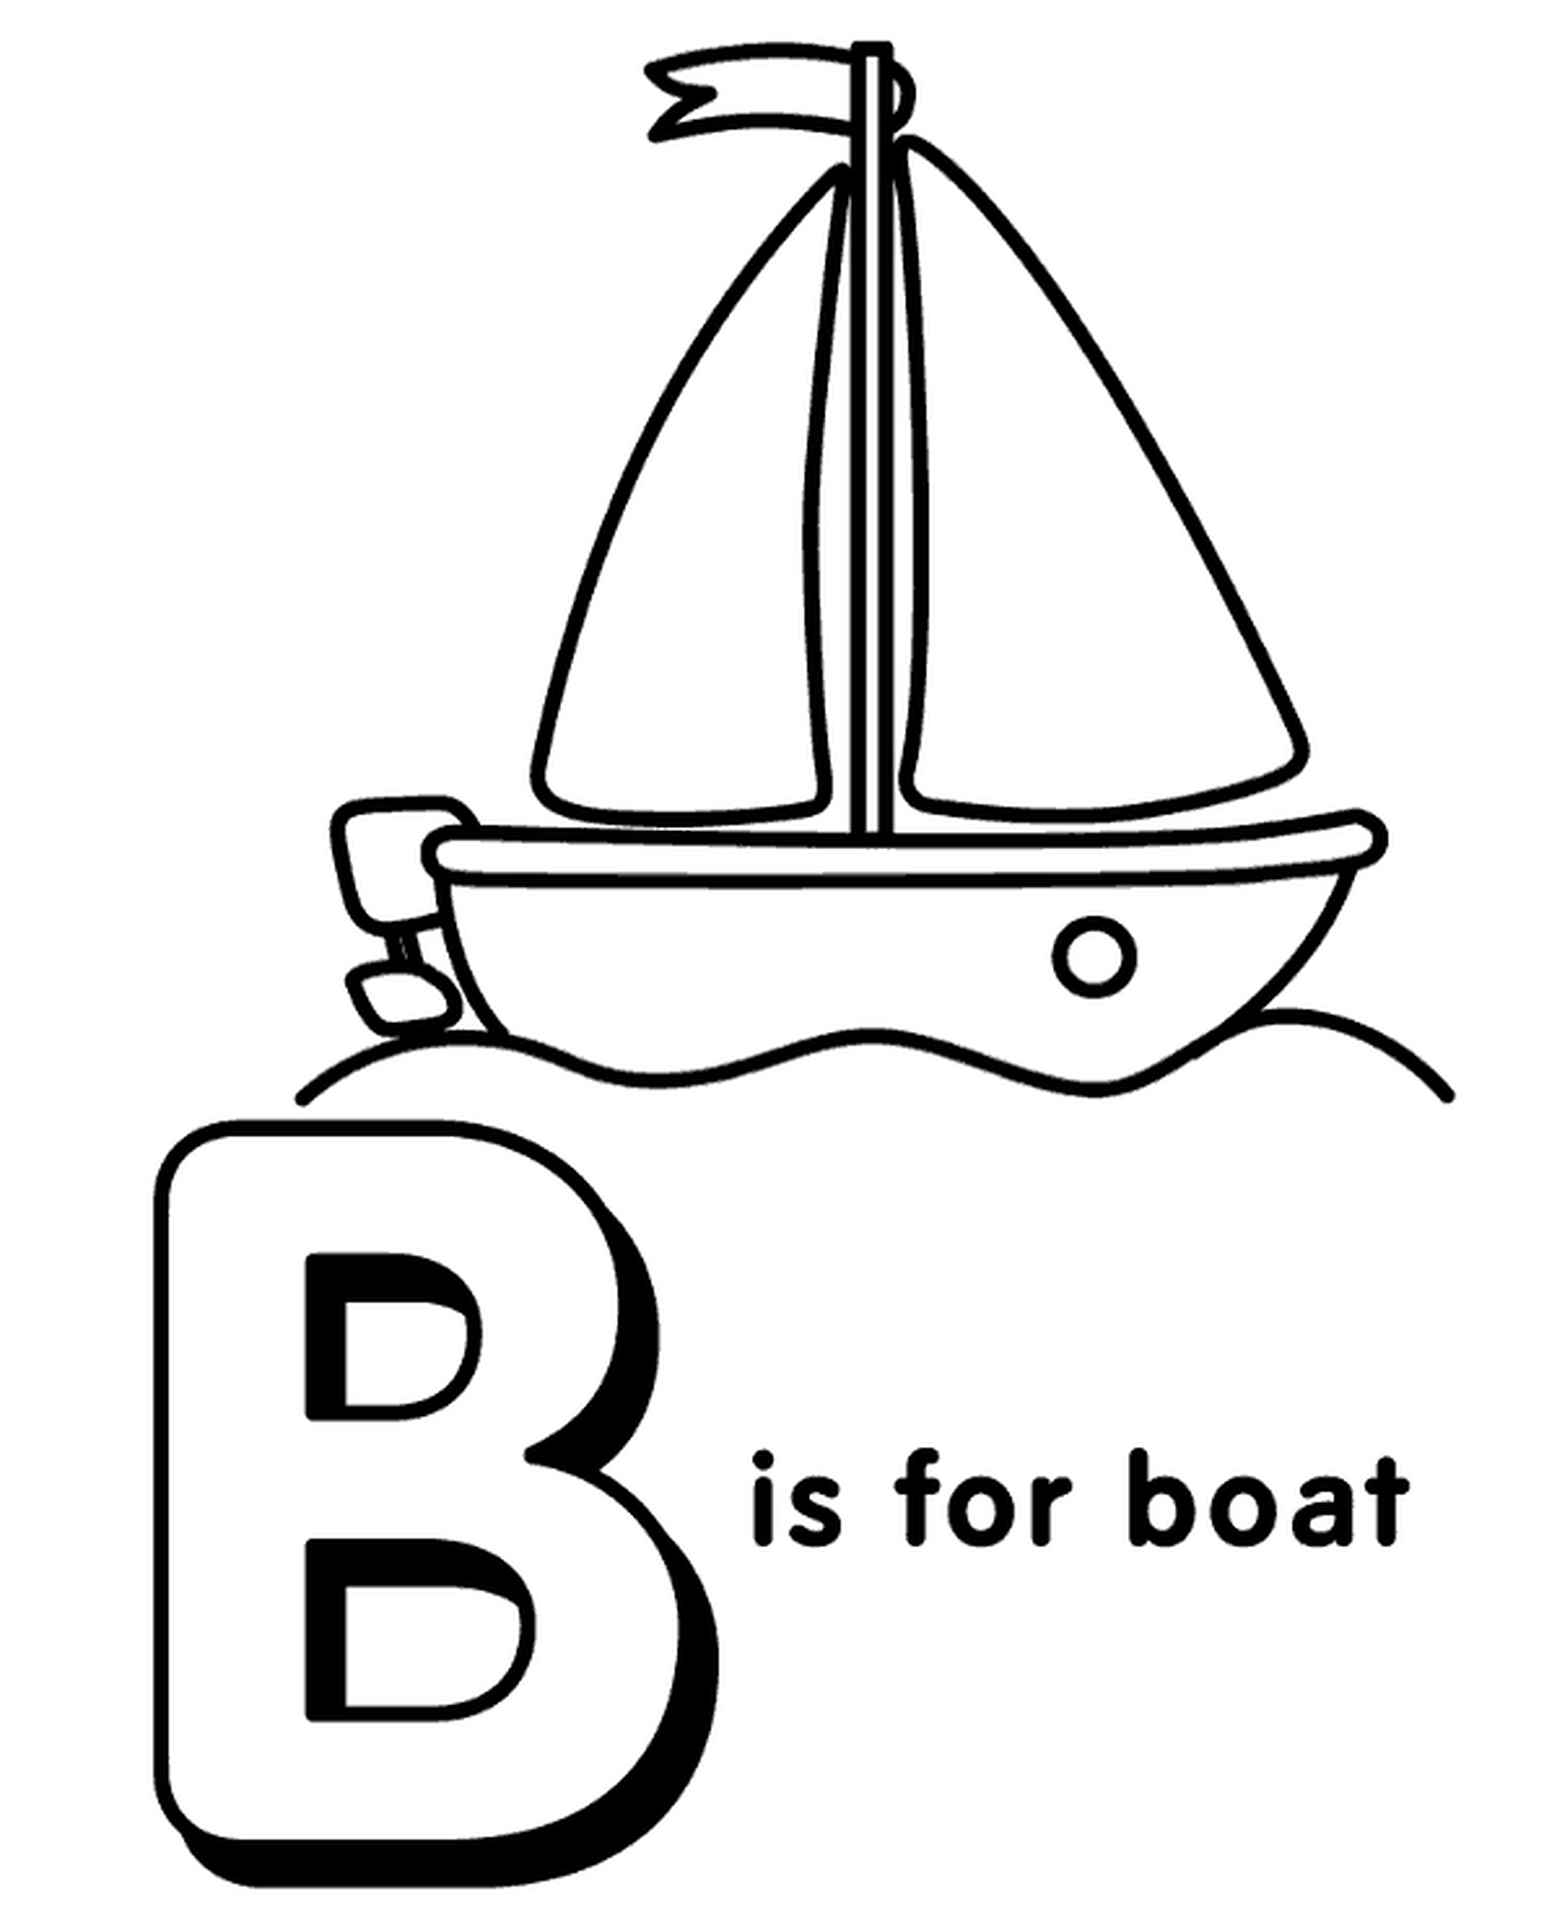 Letter B Coloring Page For Kids